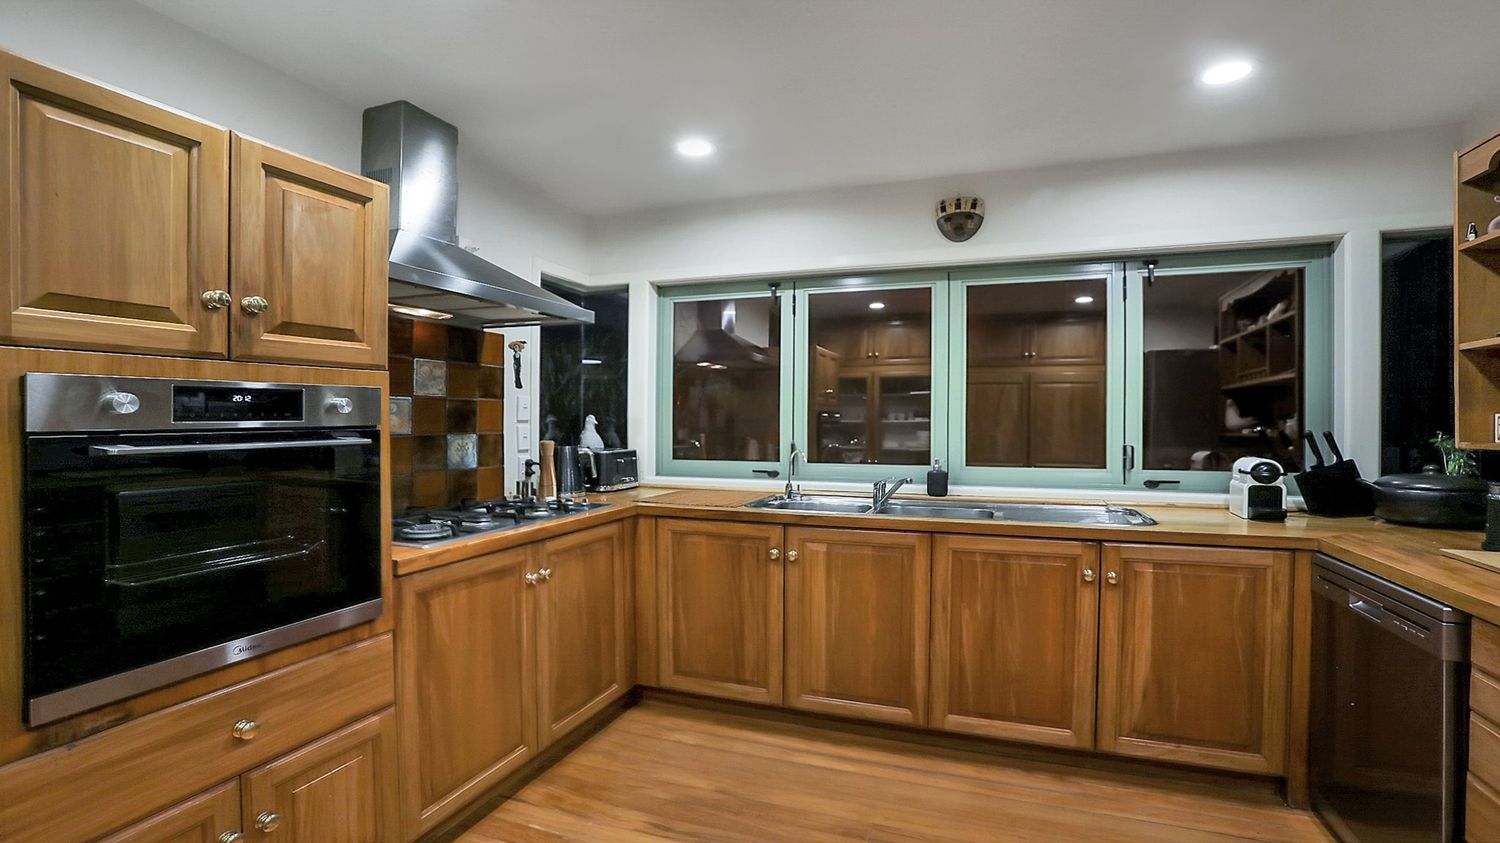 27._Seaview_normal_looking_kitchen_thank_goodness_1500x843.jpeg